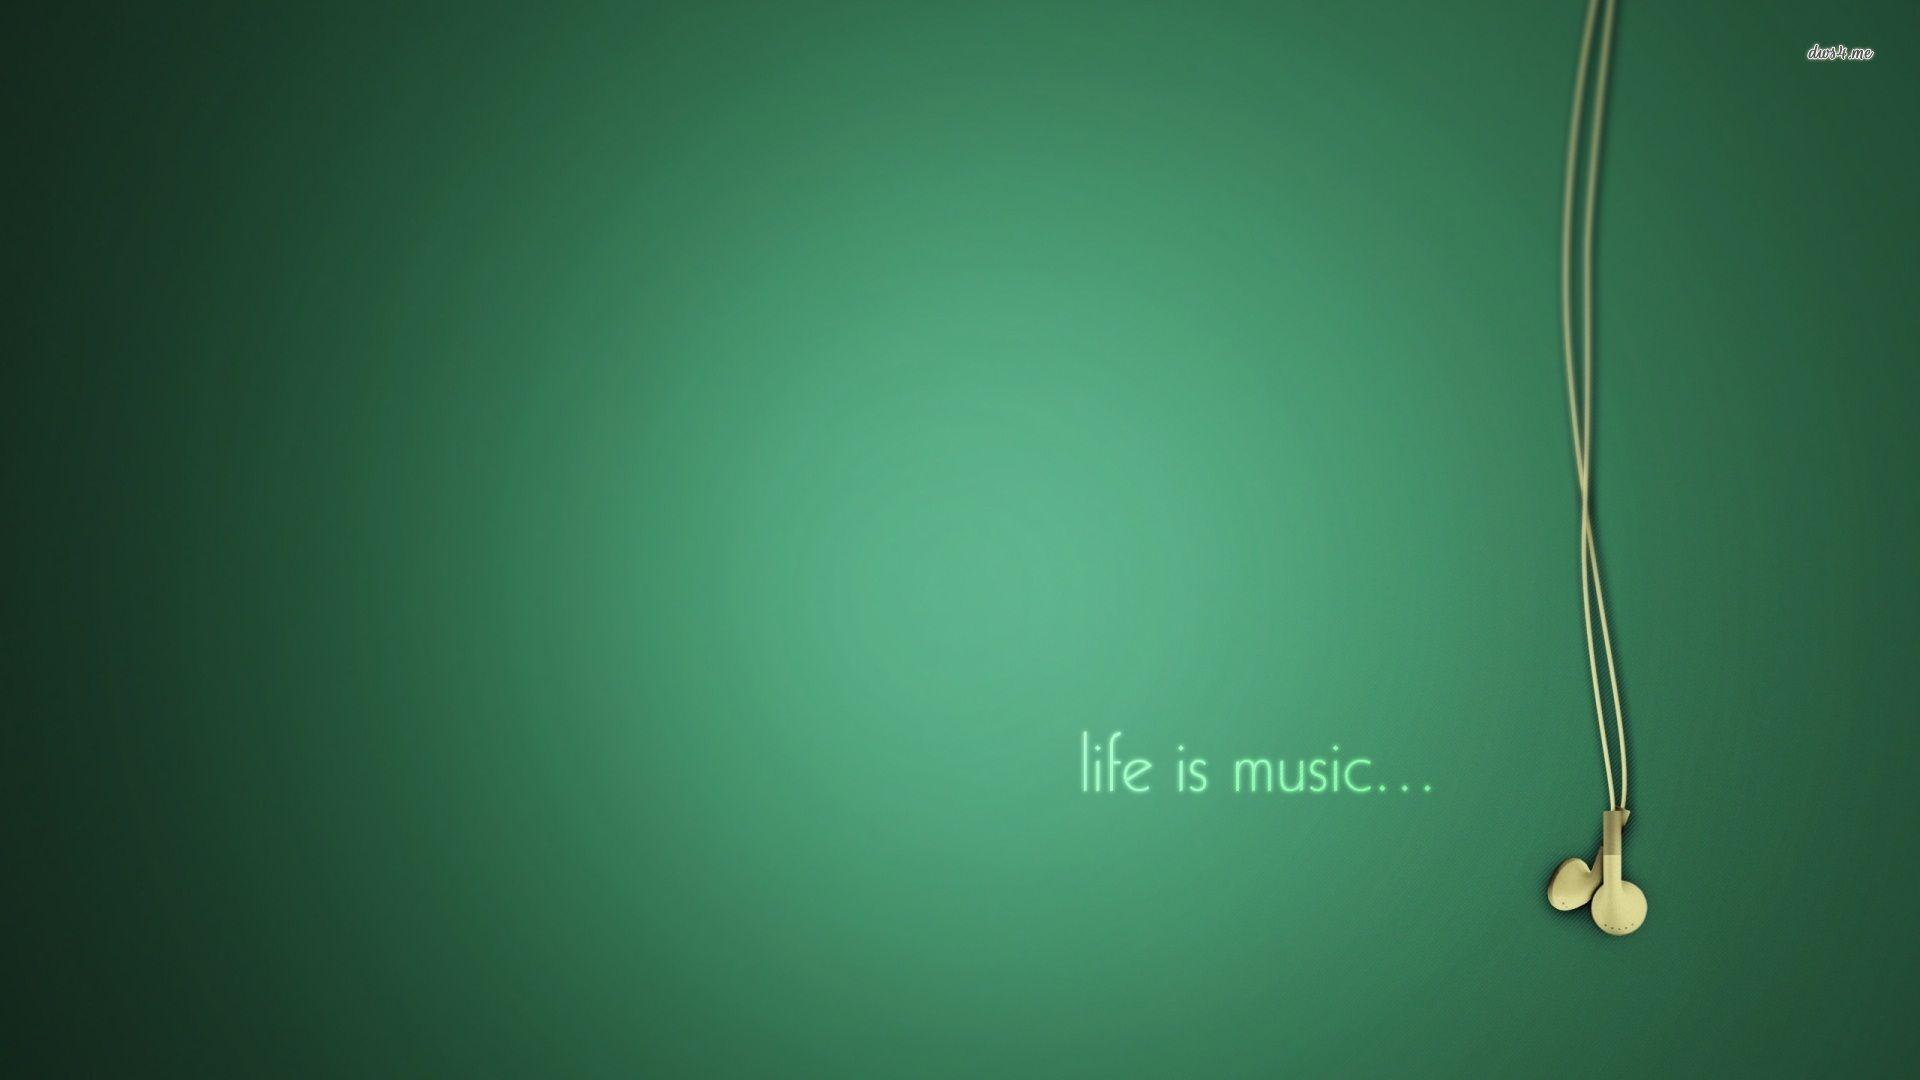 Music is my life wallpapers wallpaper cave for Big wallpaper for wall